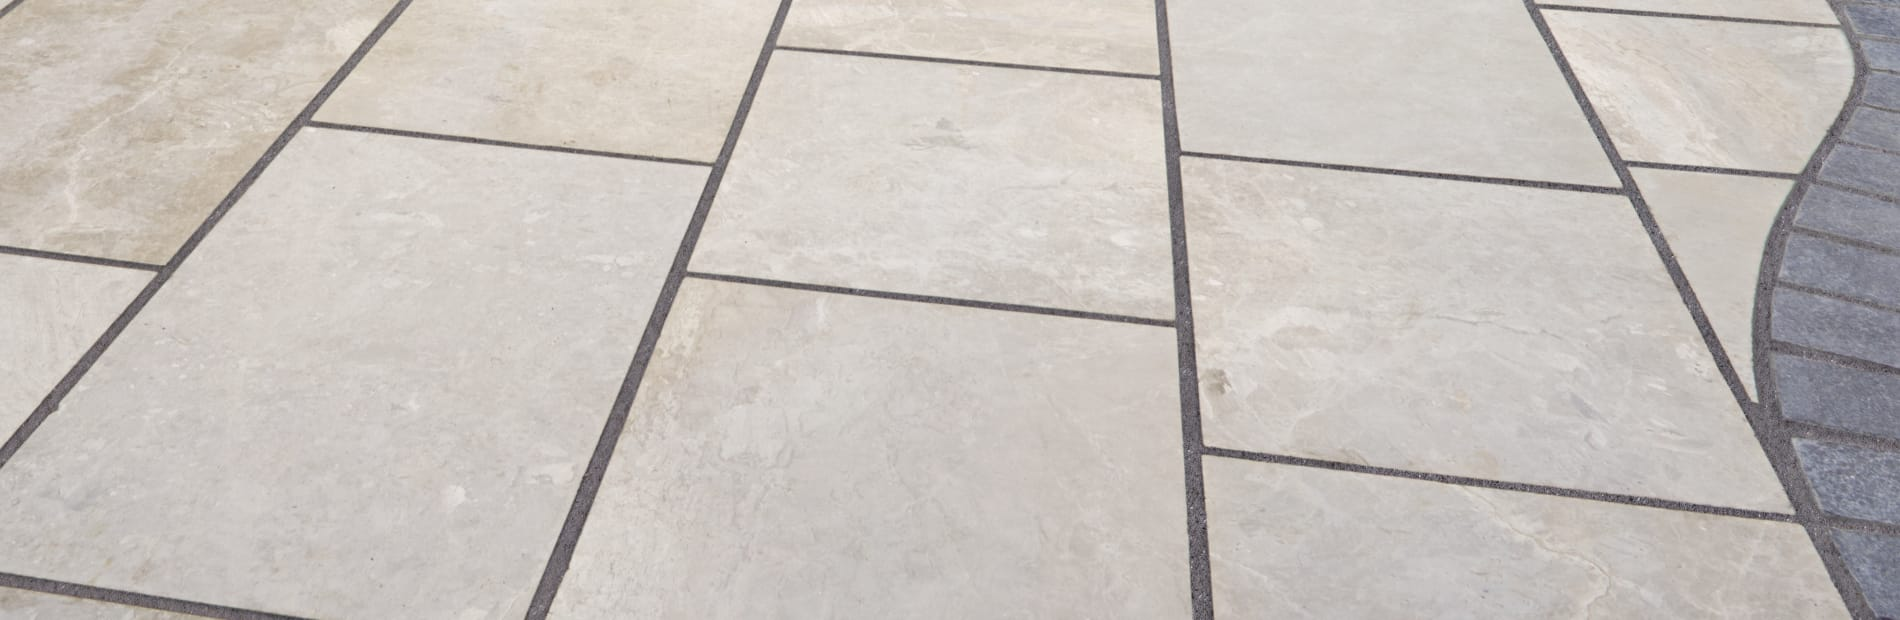 Marshalls Exterior Jointing Grout hero image